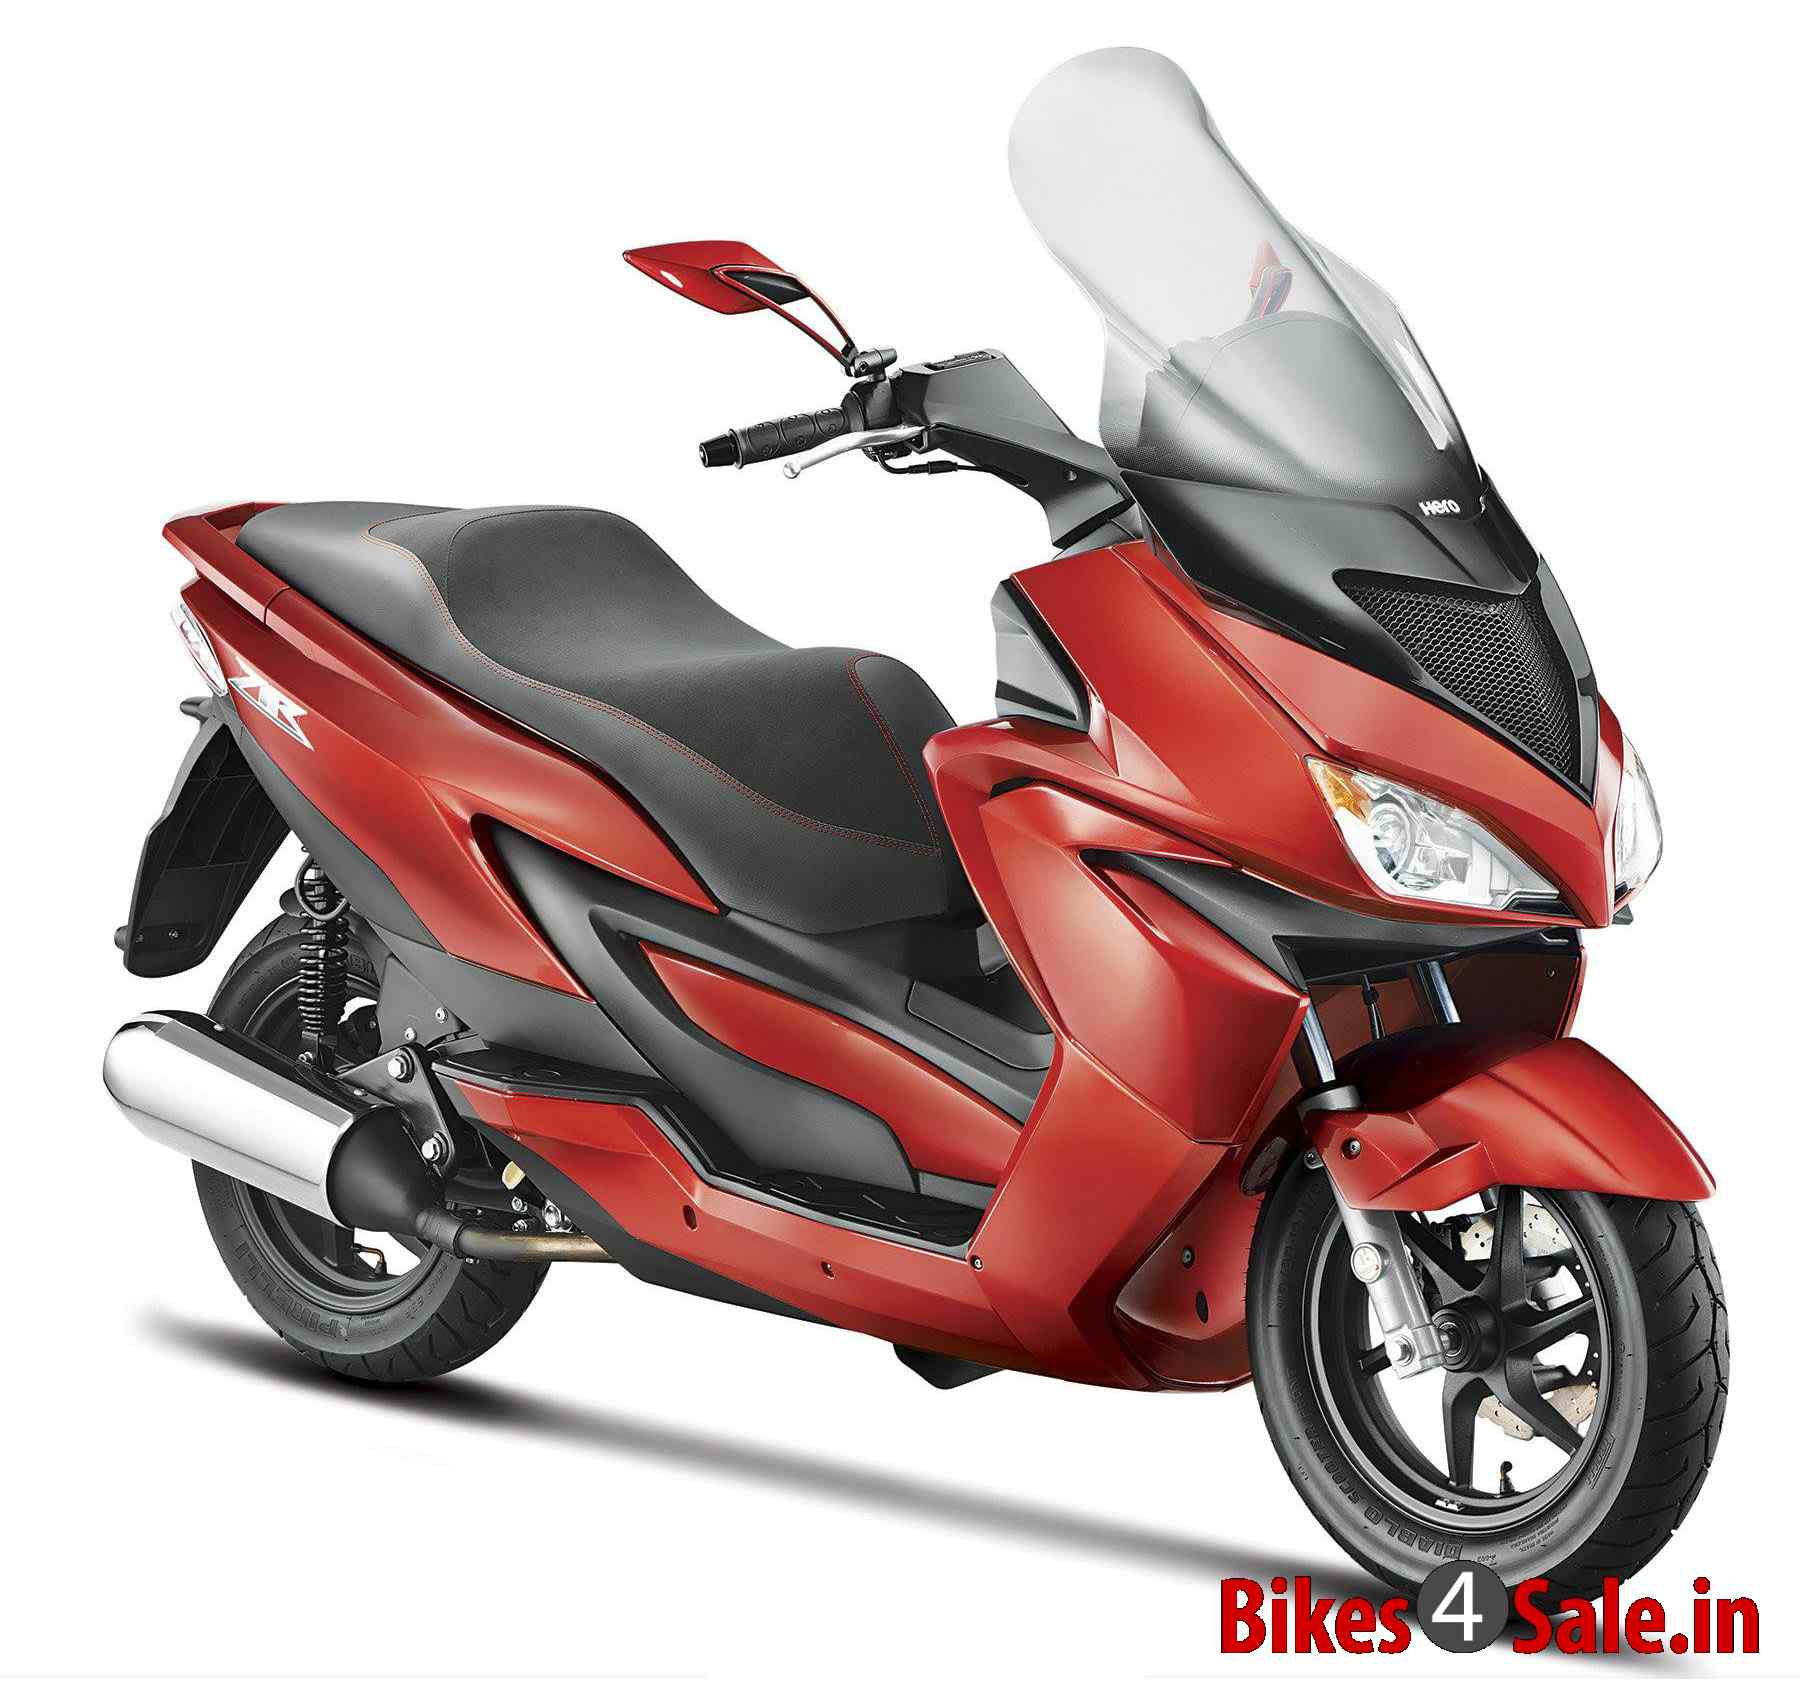 Upcoming New Scooter Models expected to launch in India in